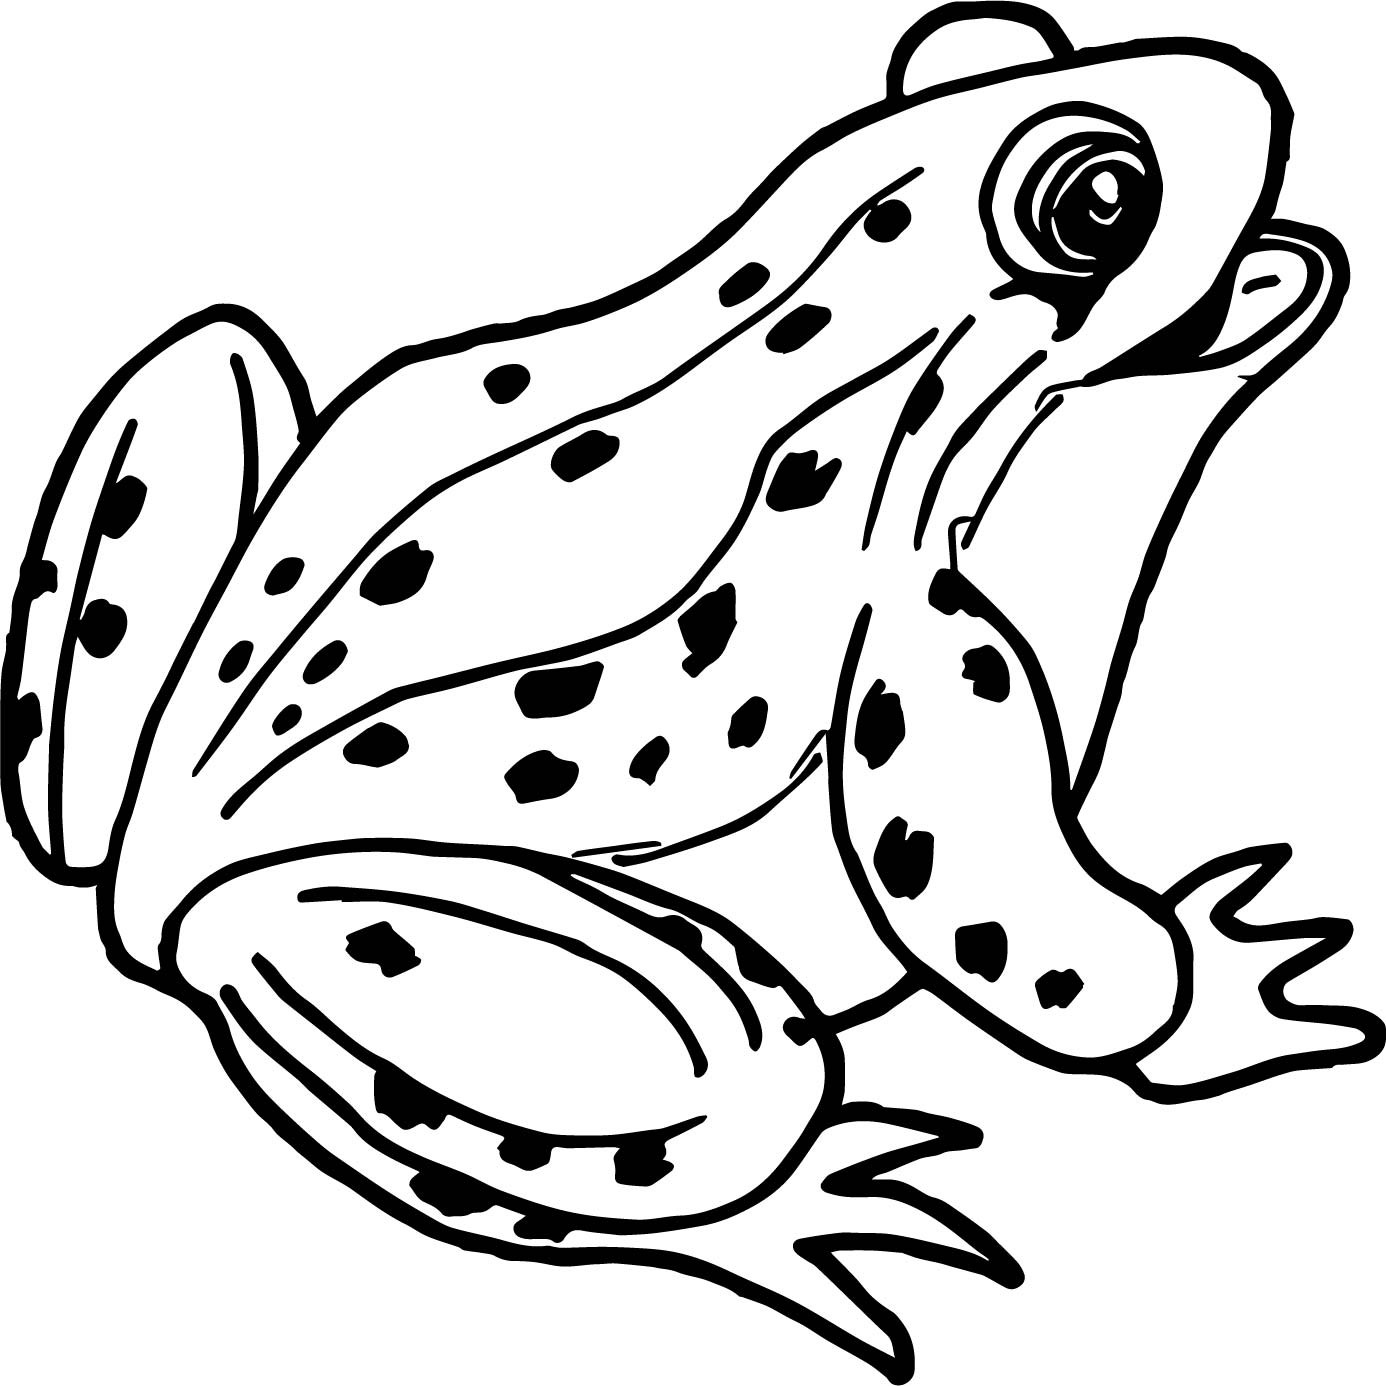 frog drawings how to draw a frog step by step frog drawings